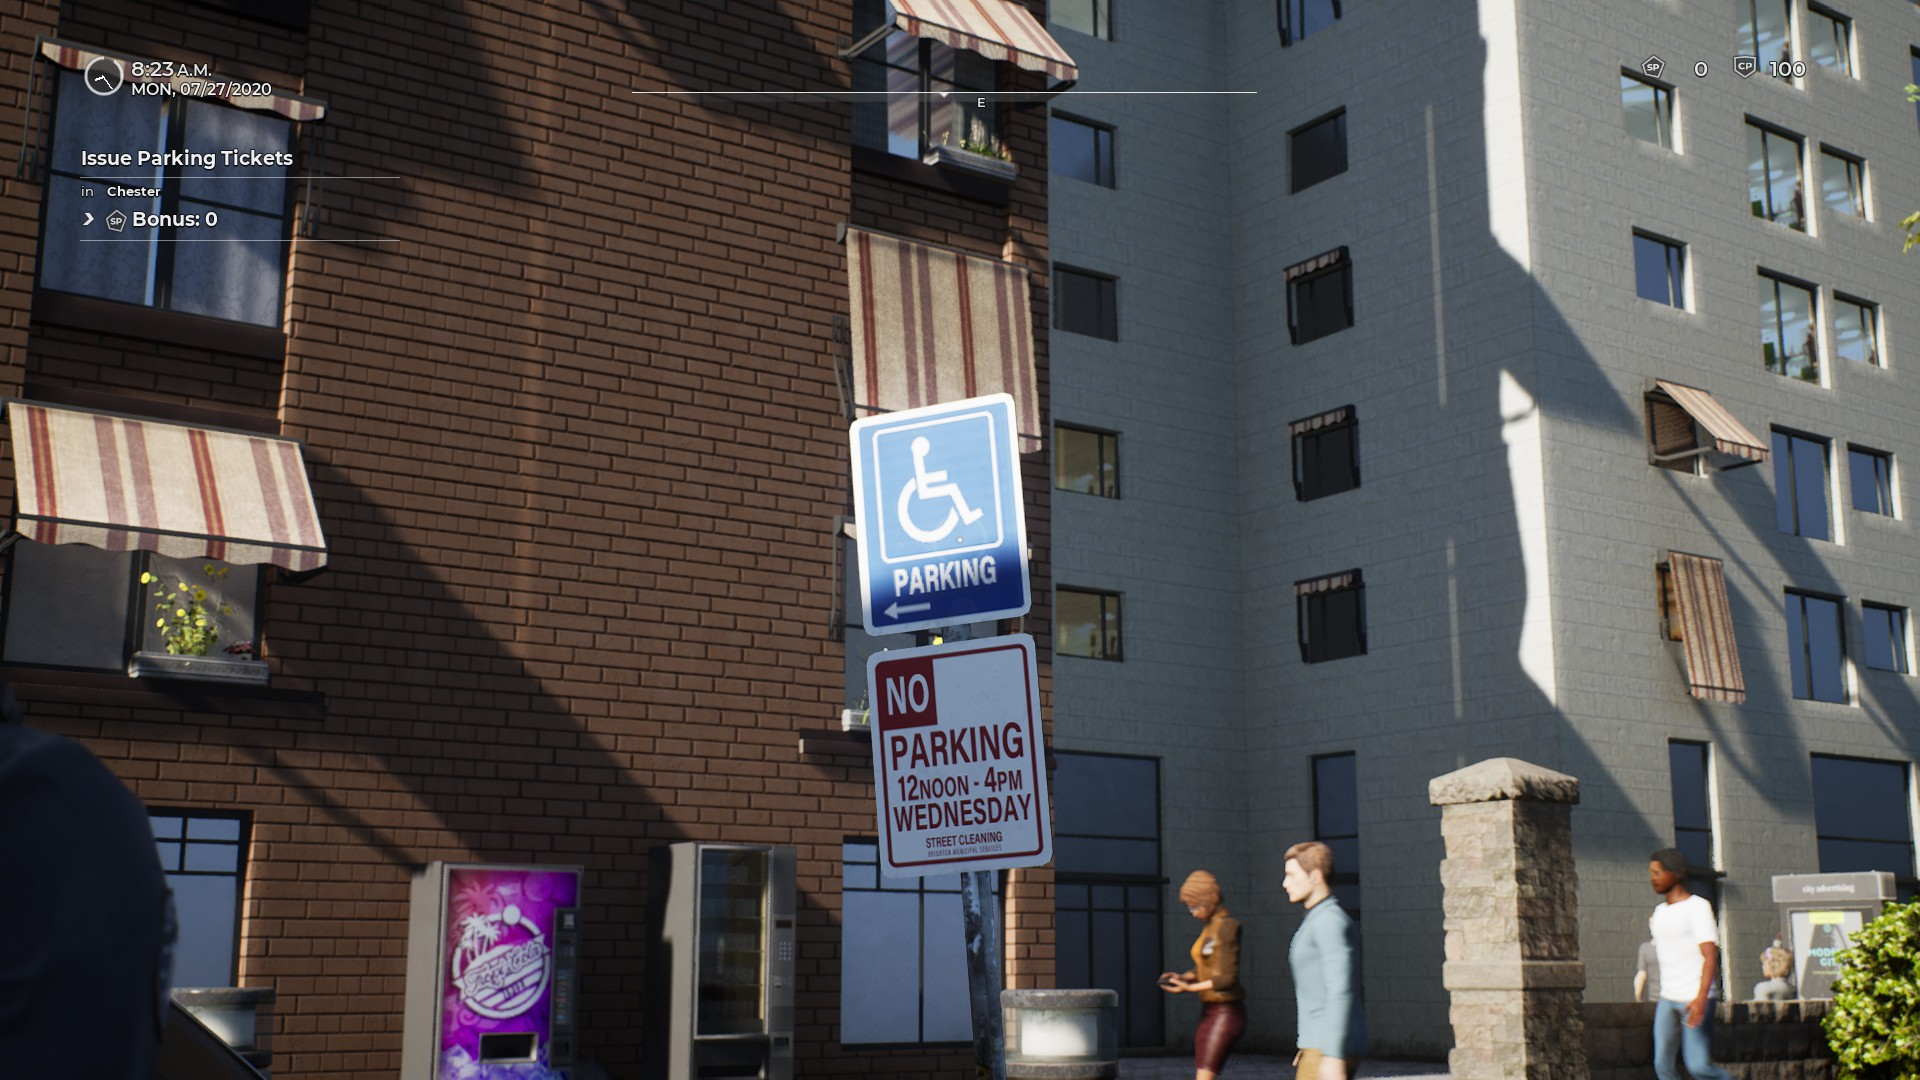 An in-depth guide to handicap parking image 1